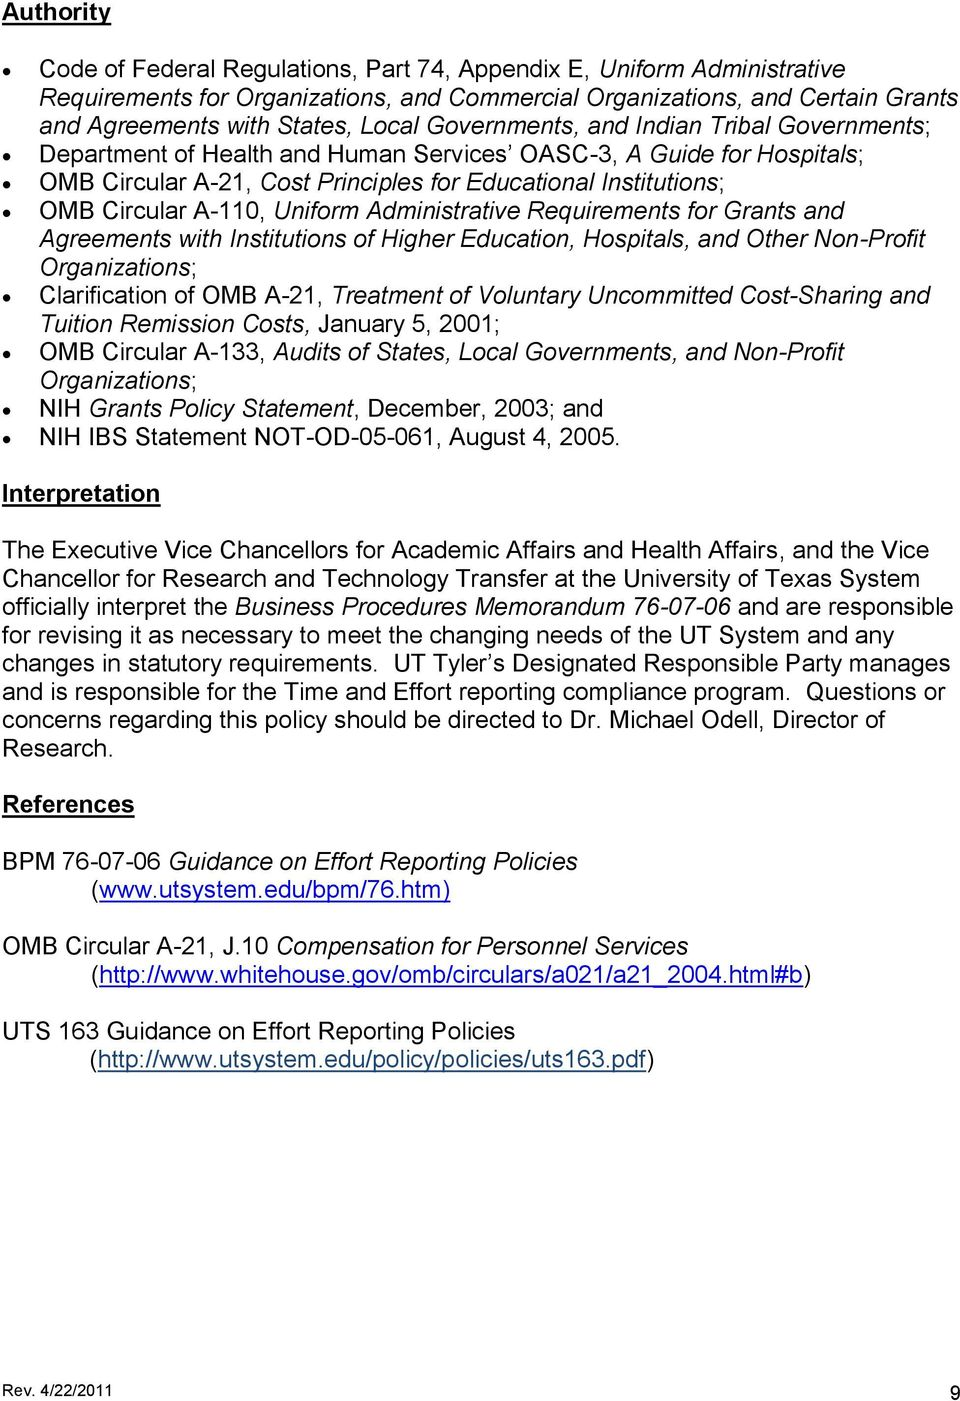 Uniform Administrative Requirements for Grants and Agreements with Institutions of Higher Education, Hospitals, and Other Non-Profit Organizations; Clarification of OMB A-21, Treatment of Voluntary